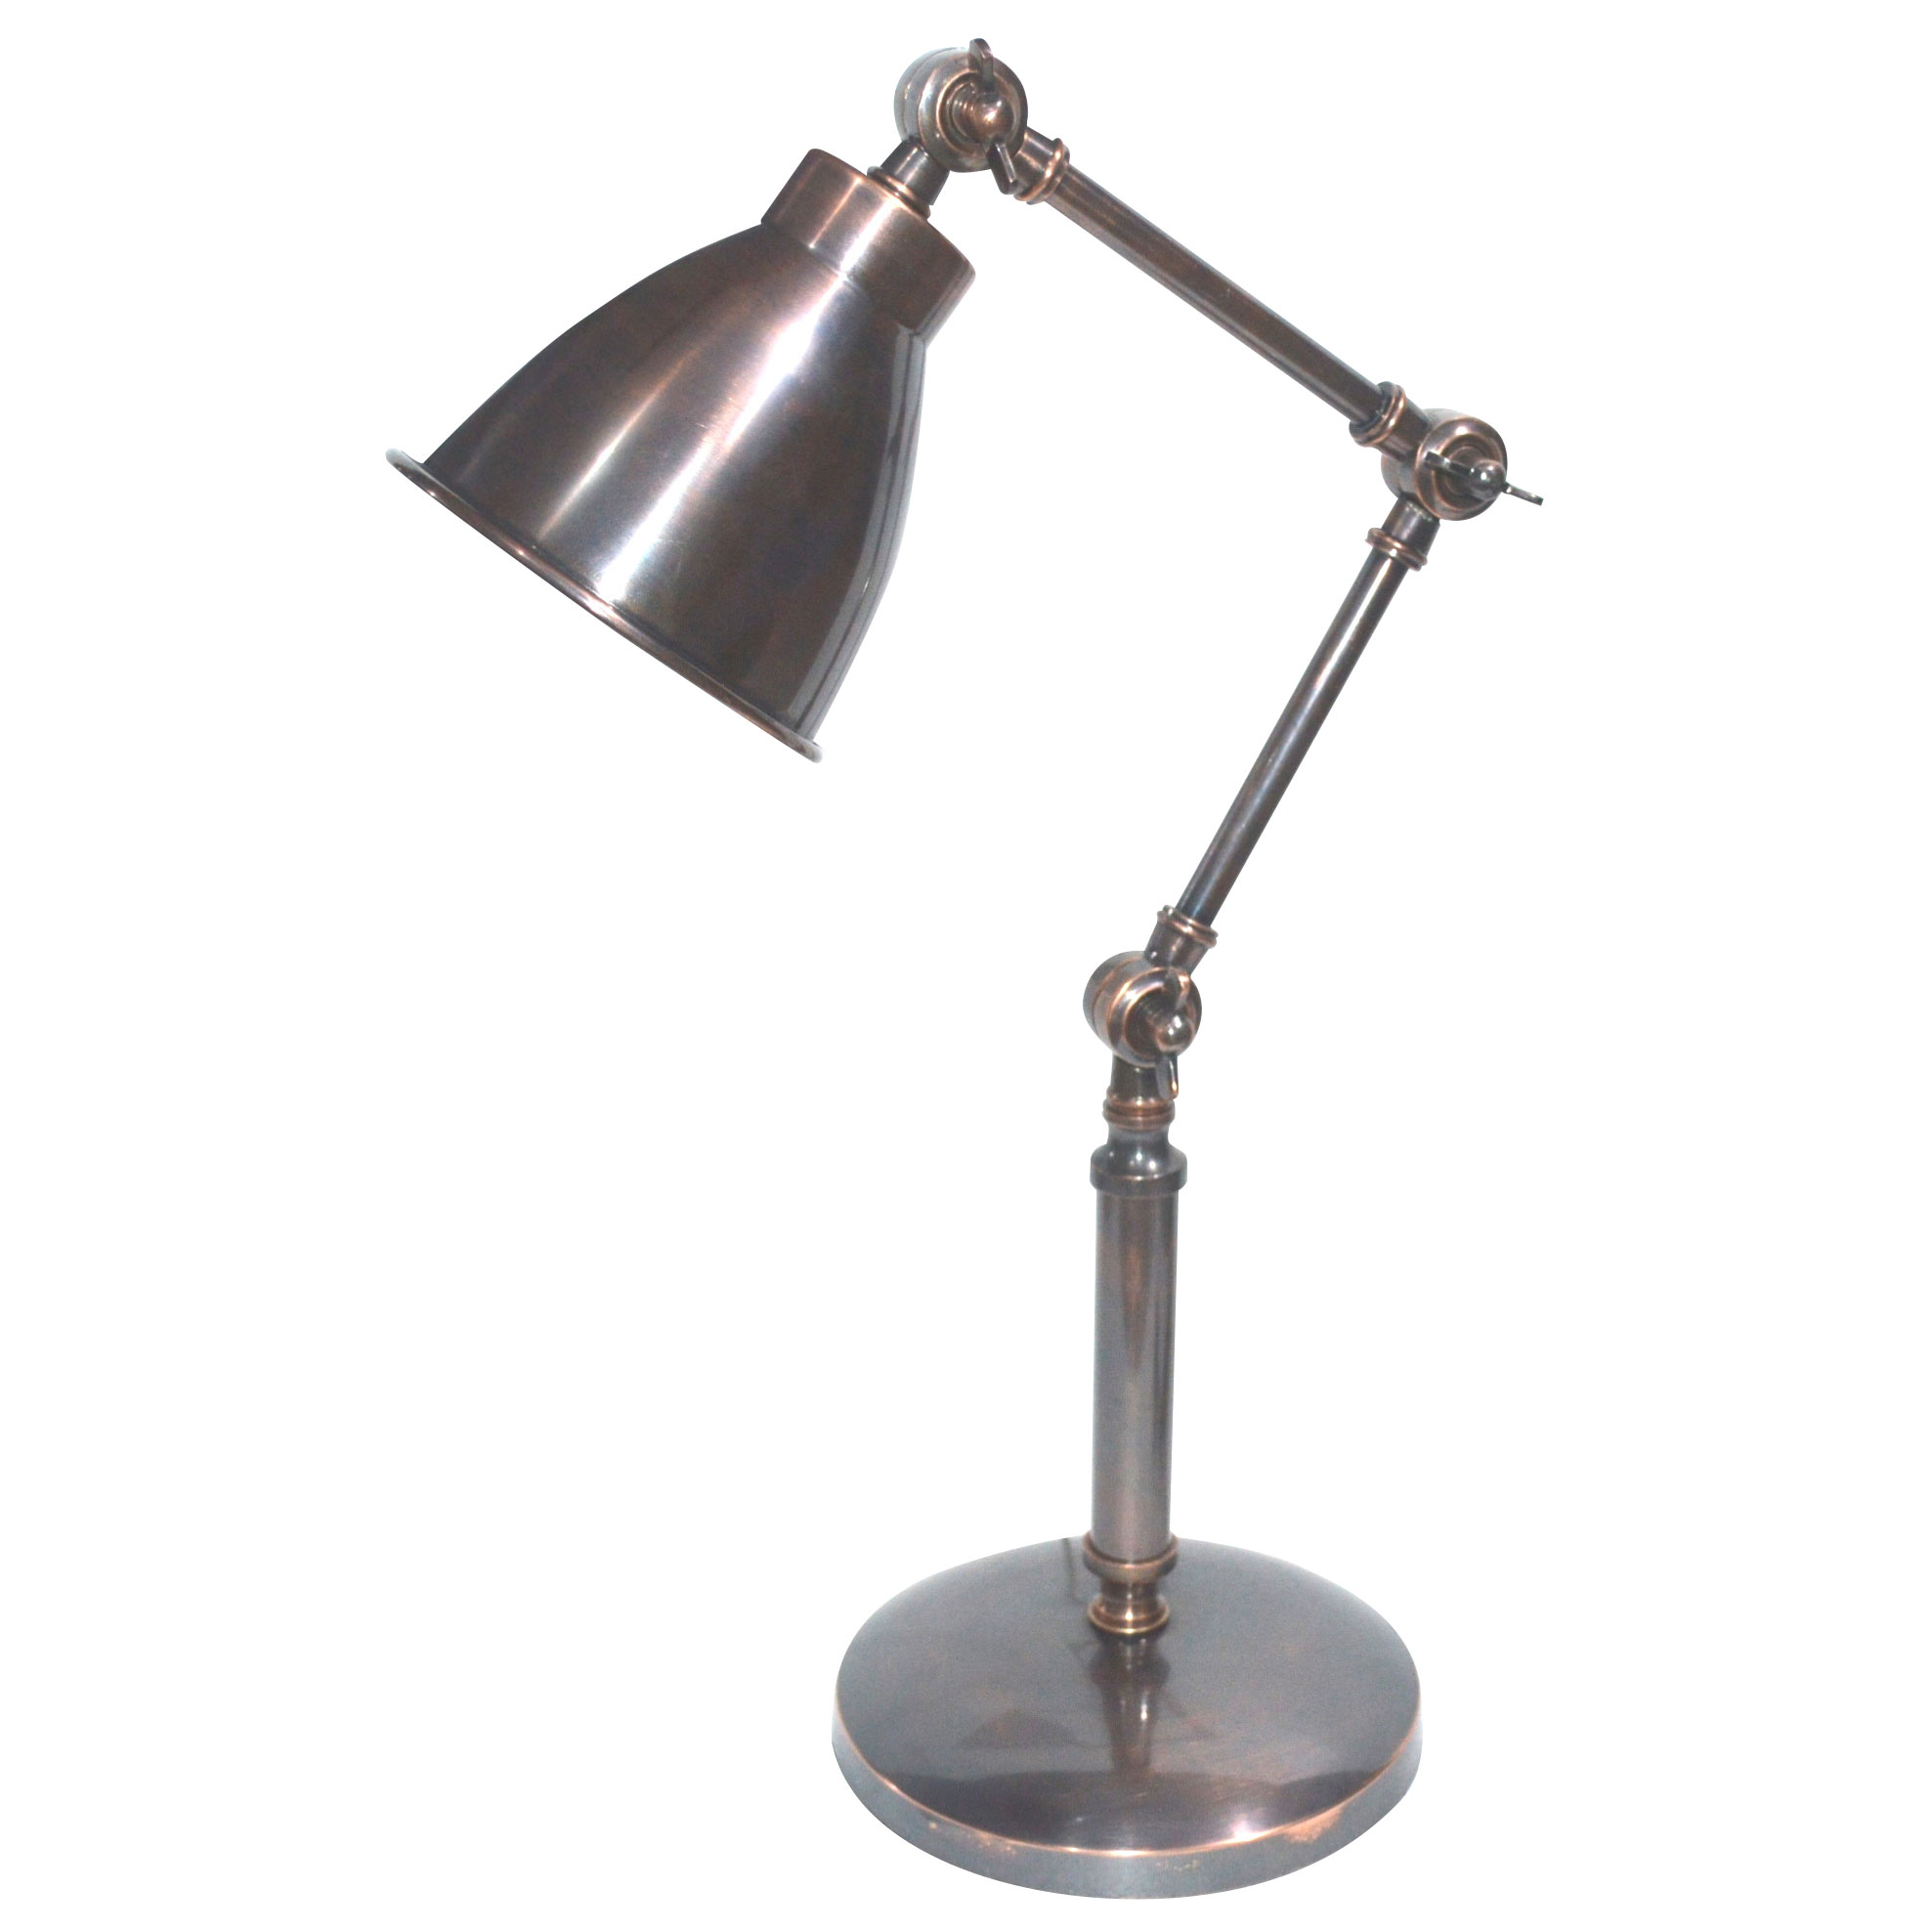 Adjustable Shakespeare Lamp Lamps Table Lamps Metal